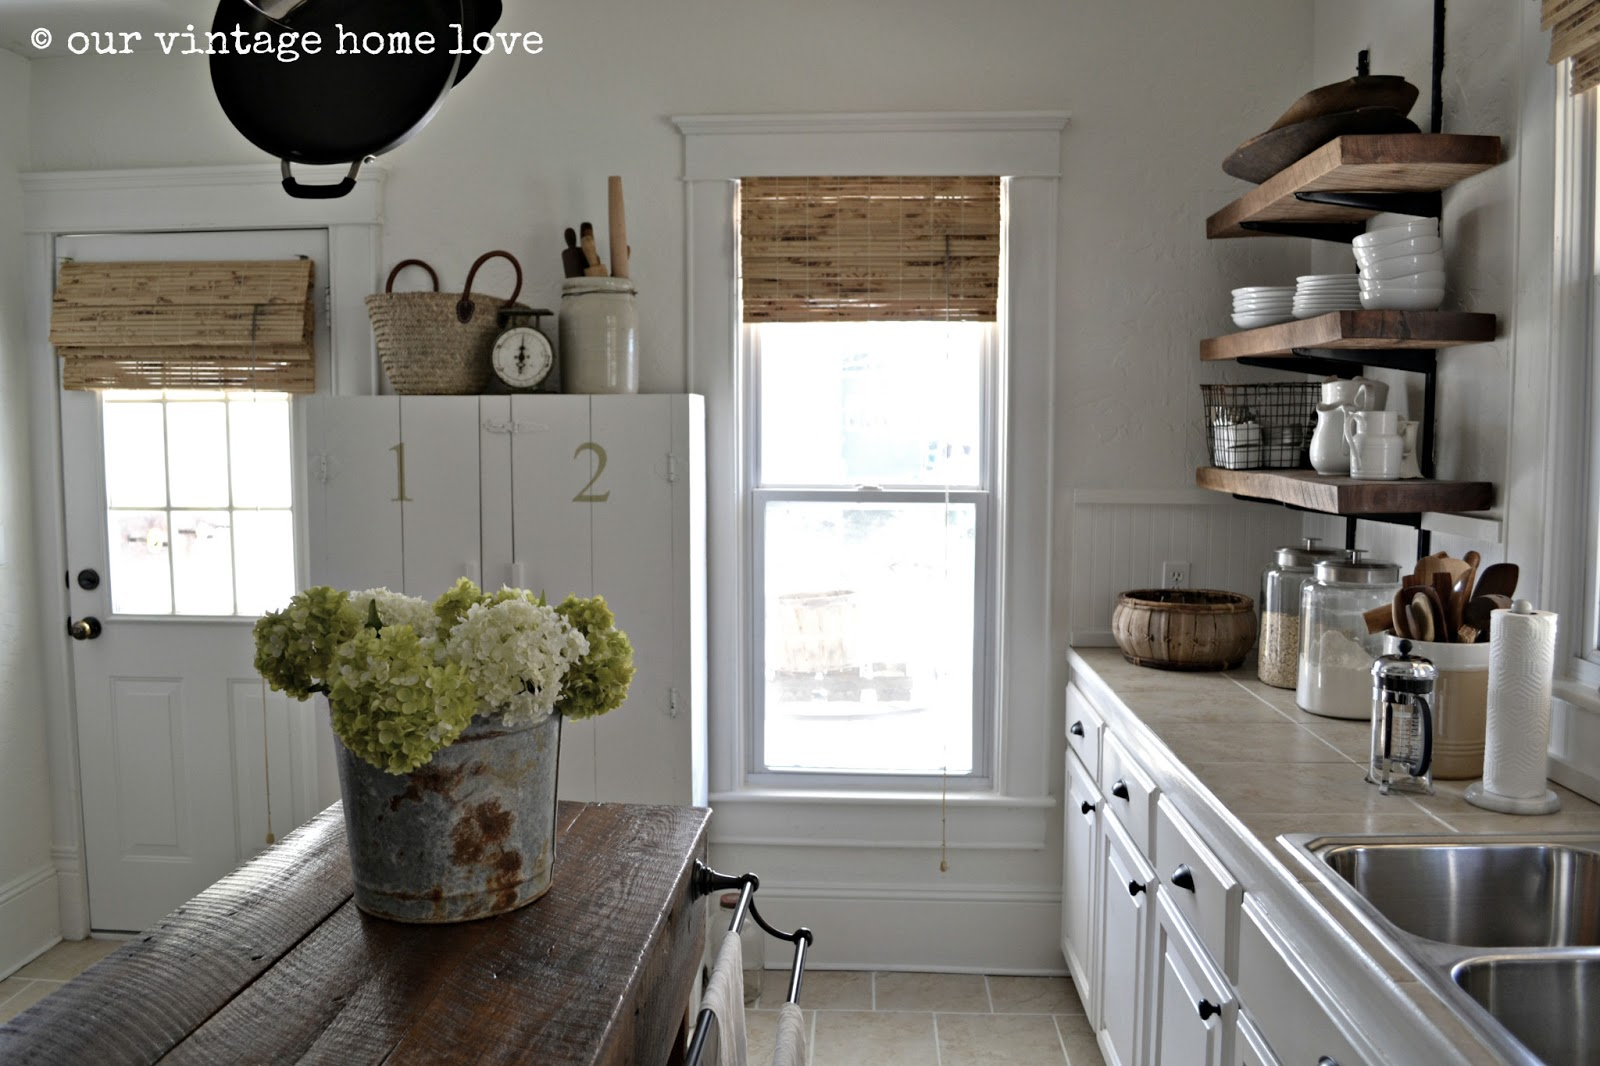 Benjamin Moore Simply White: Vintage Home Love: Simply White